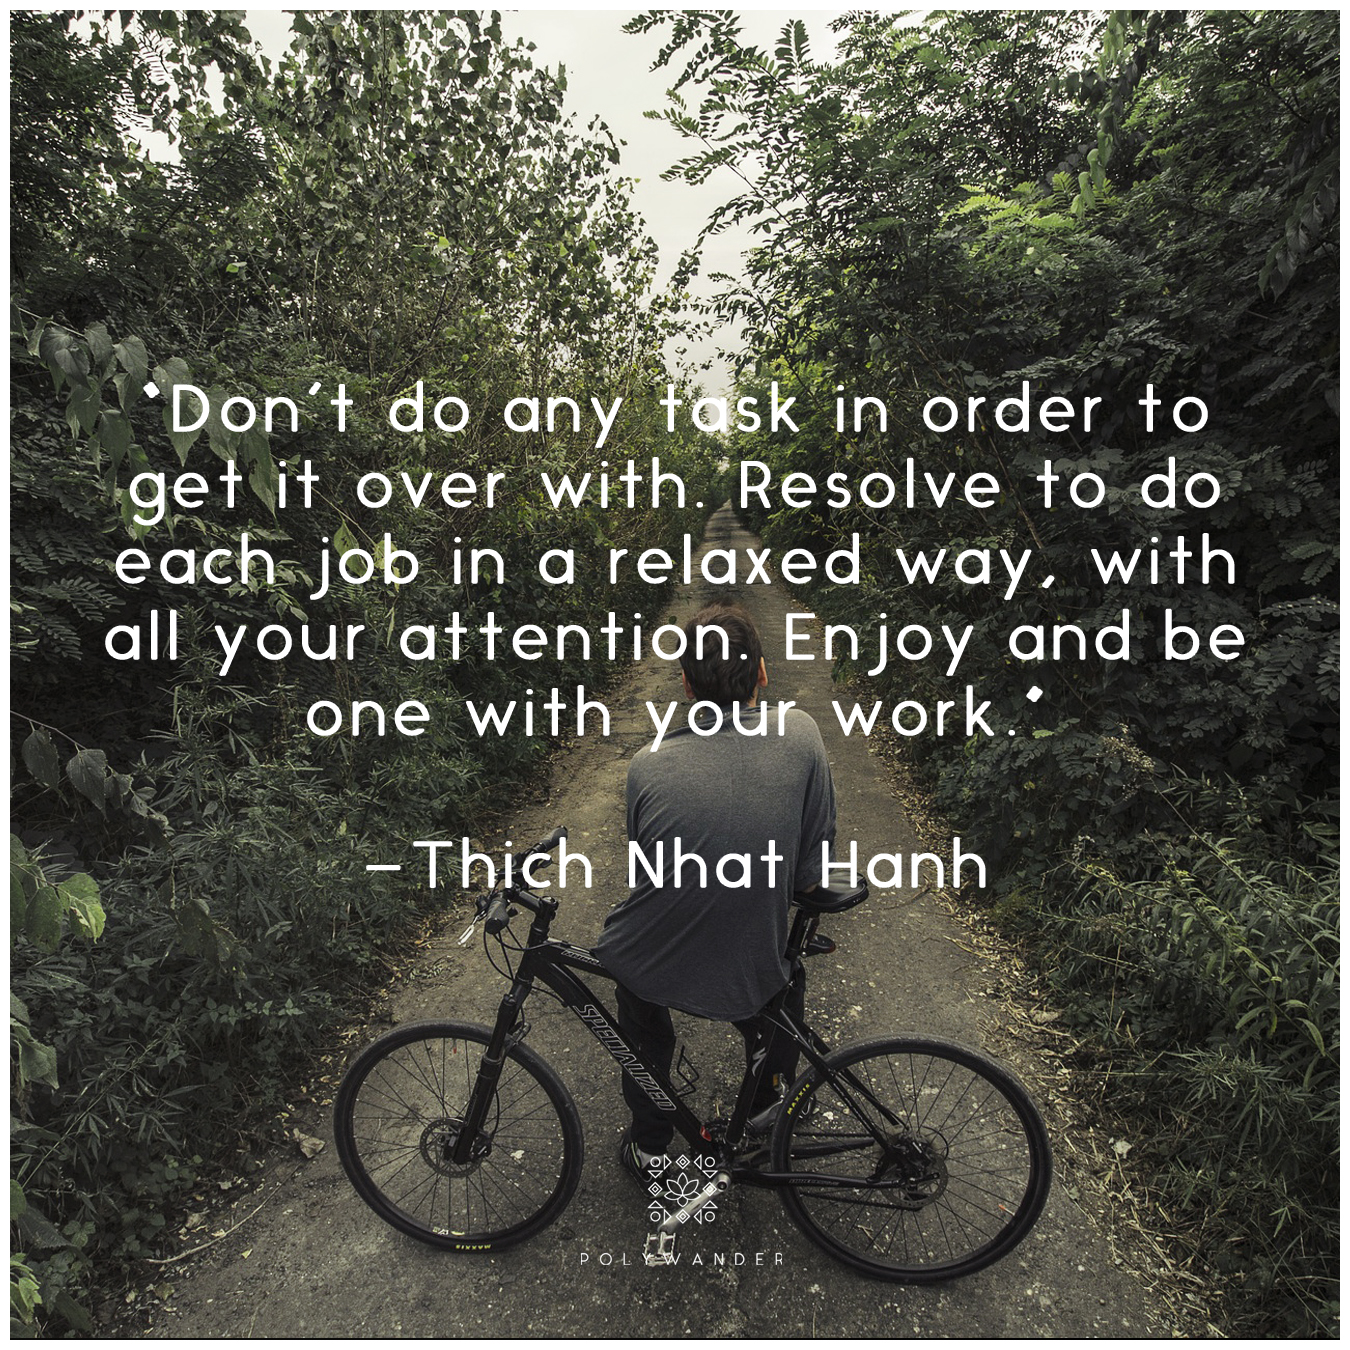 """Don't do any task in order to get it over with. Resolve to do each job in a relaxed way, with all your attention. Enjoy and be one with your work."" —Thich Nhat Hanh"